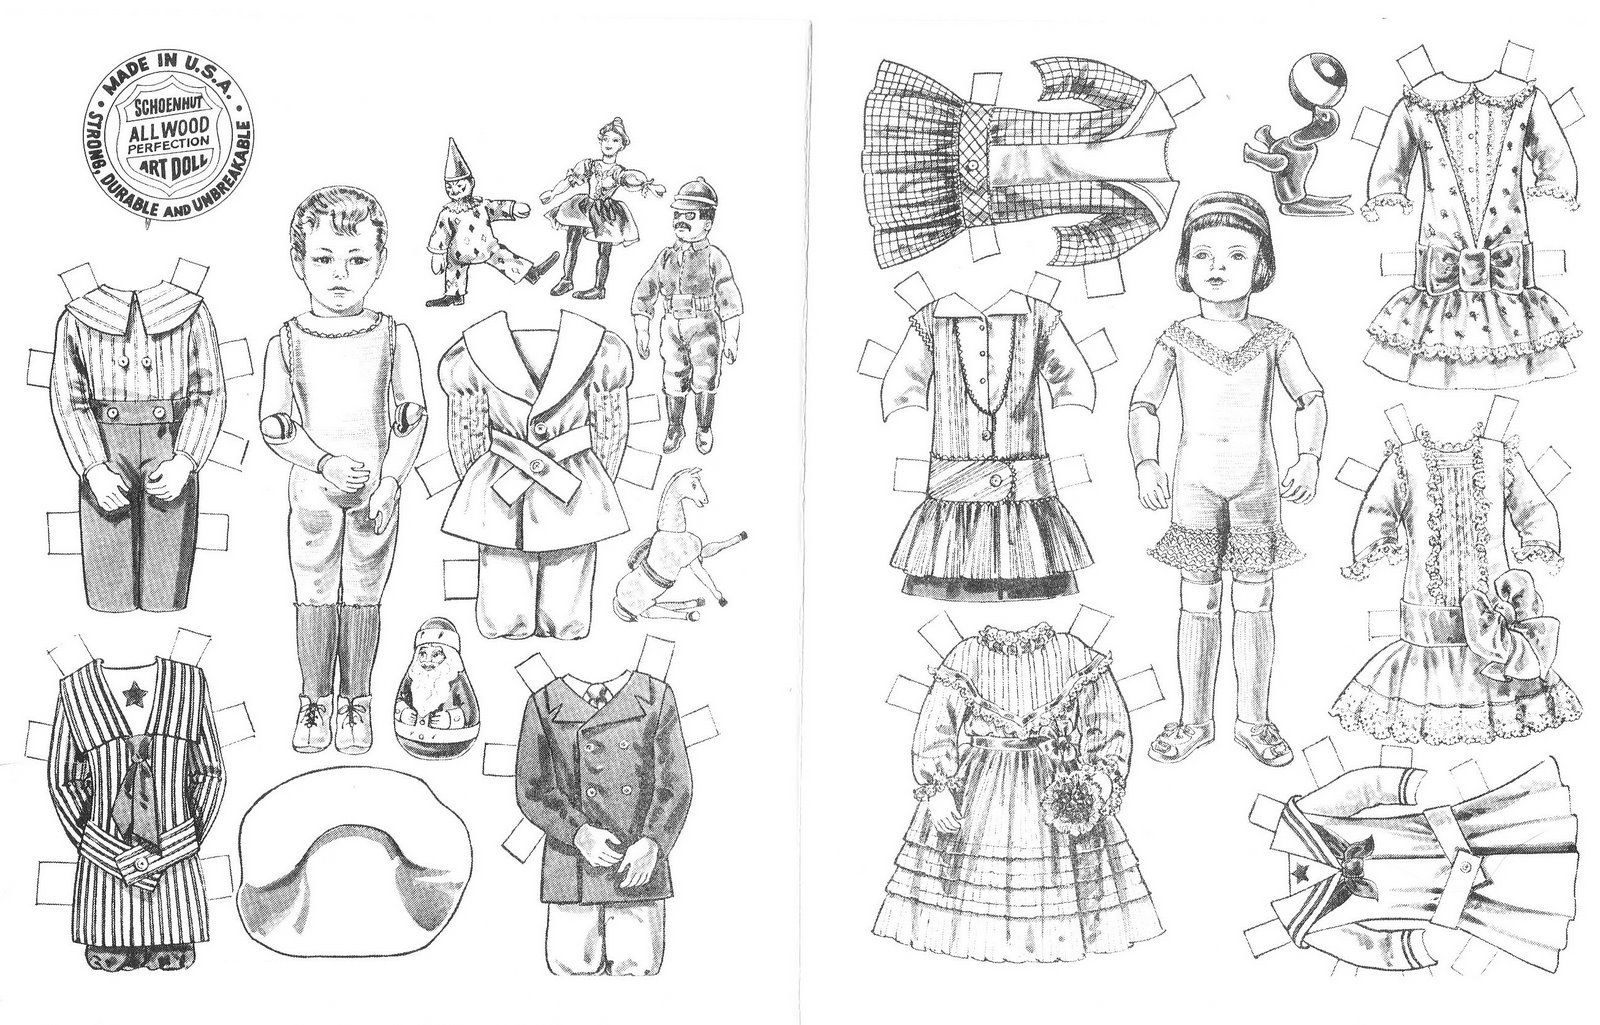 Free Printable Paper Doll Coloring Pages For Kids | Paper Doll - Free Printable Paper Doll Coloring Pages